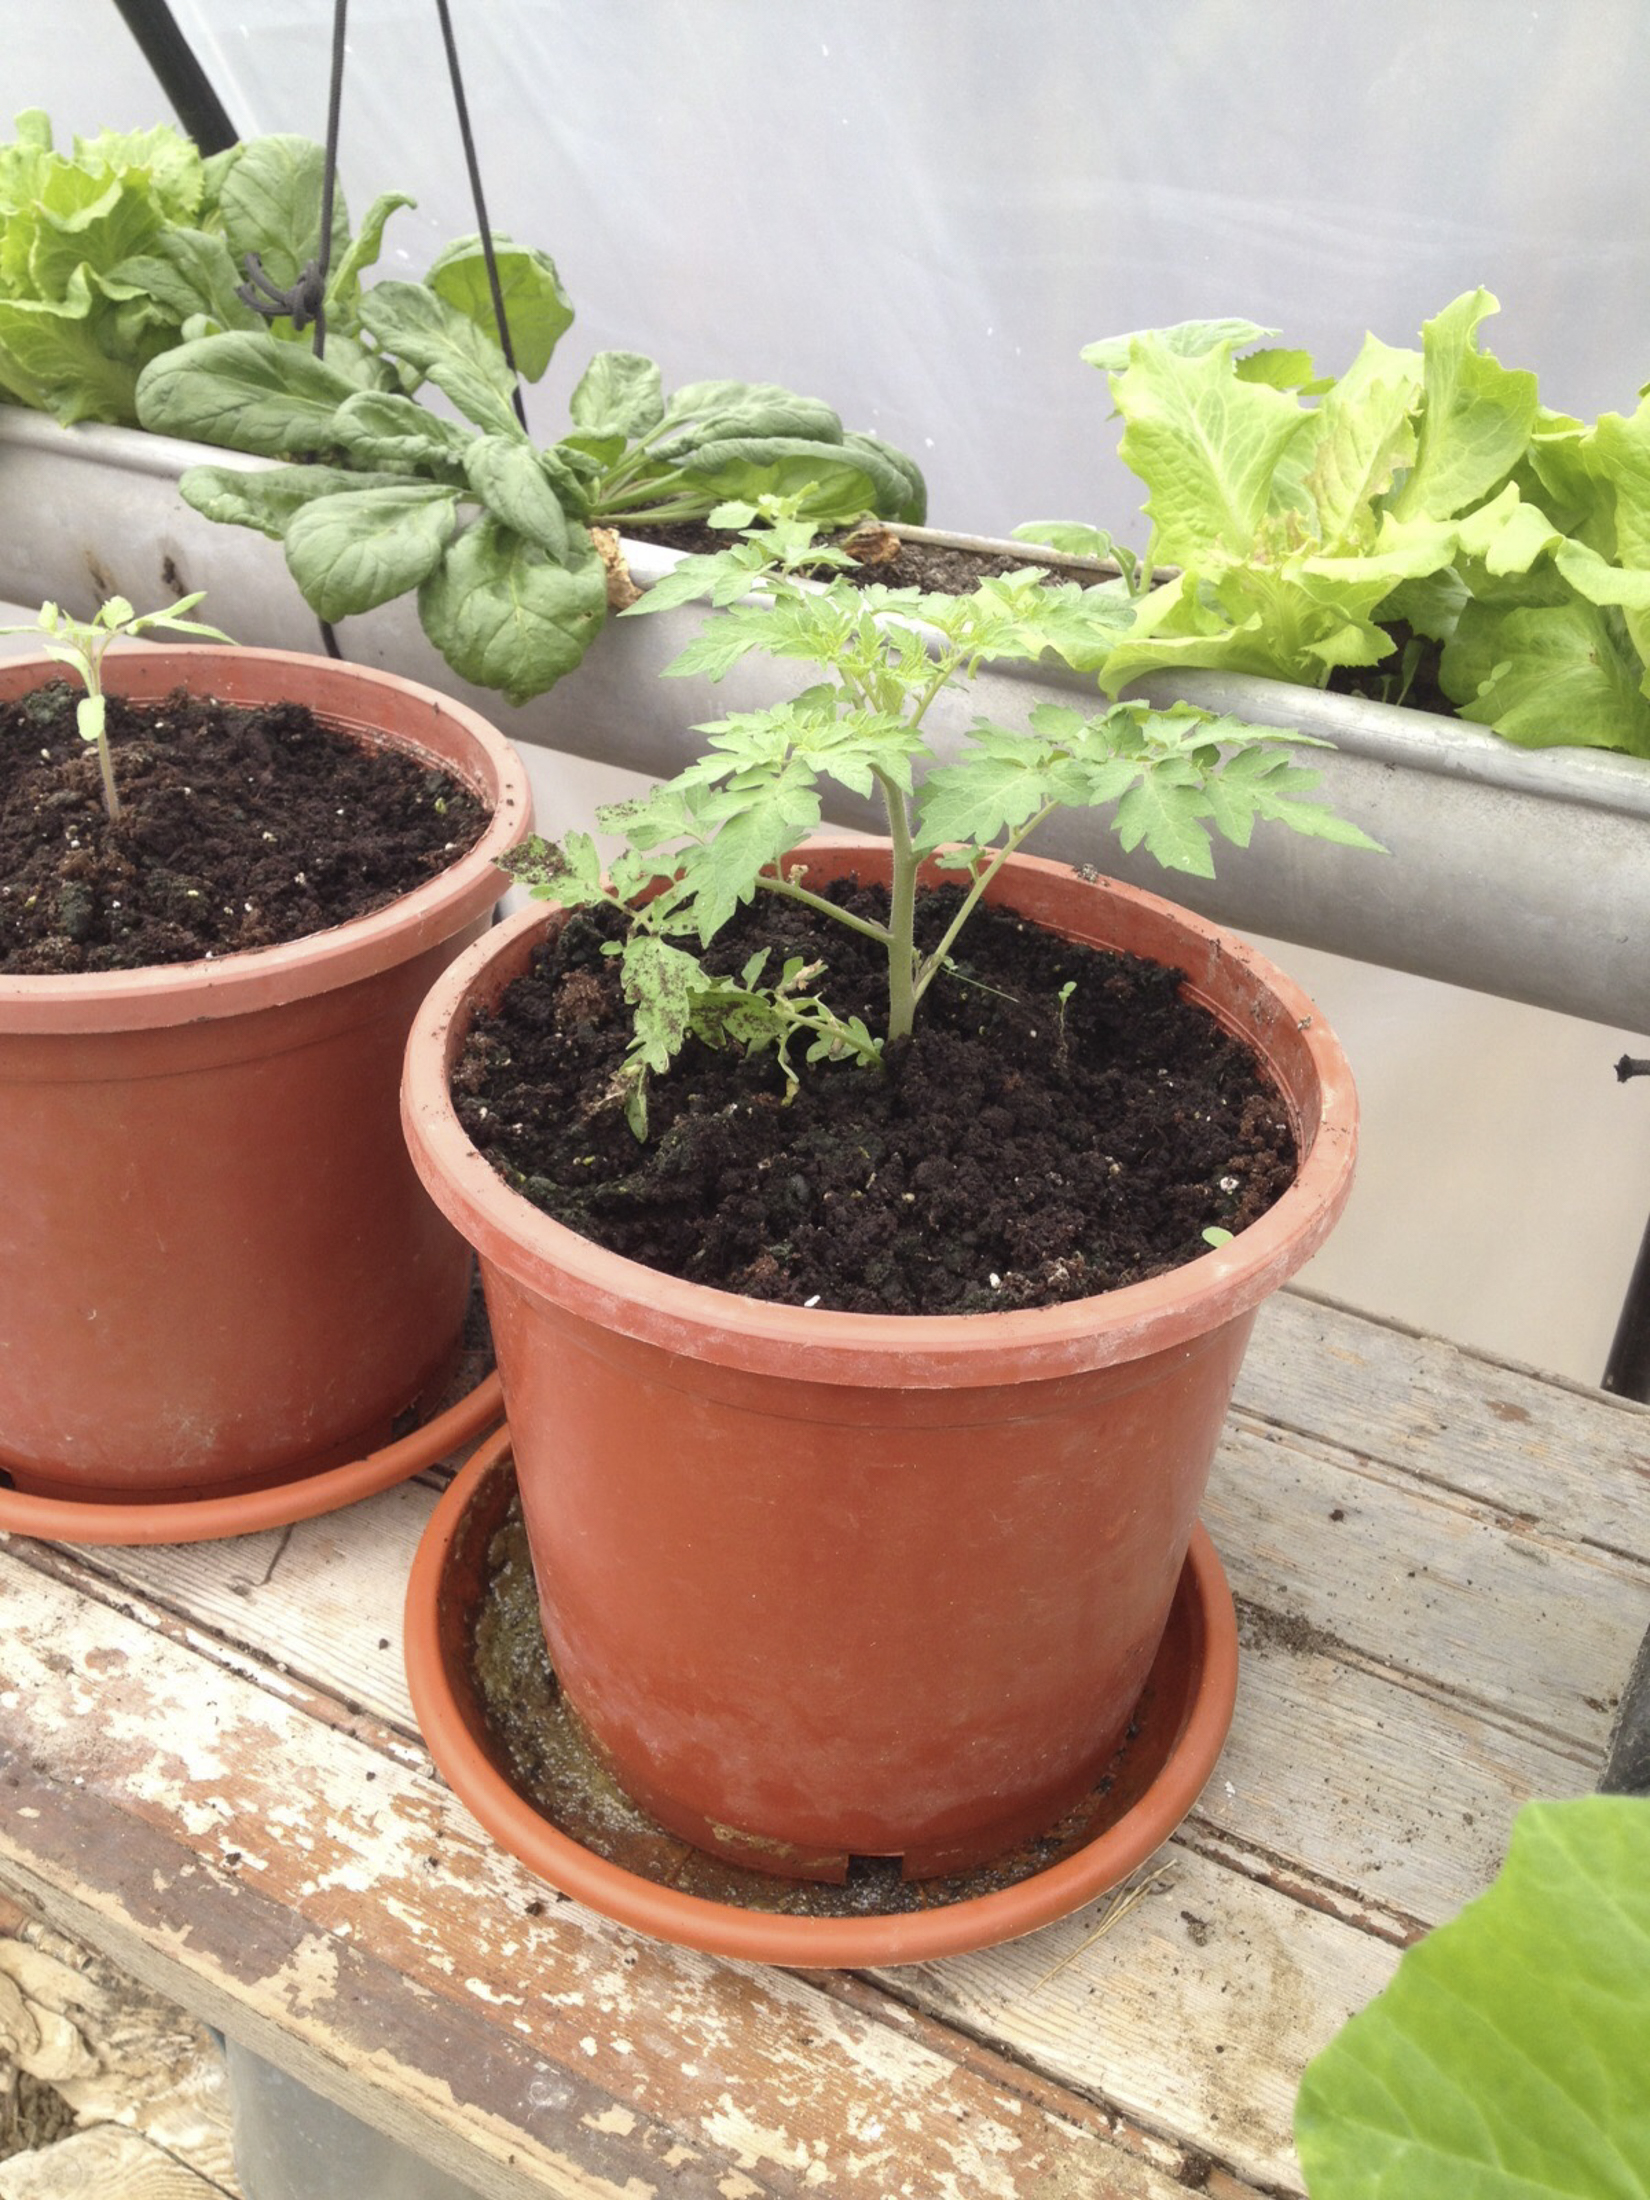 Baby tomato plant growing